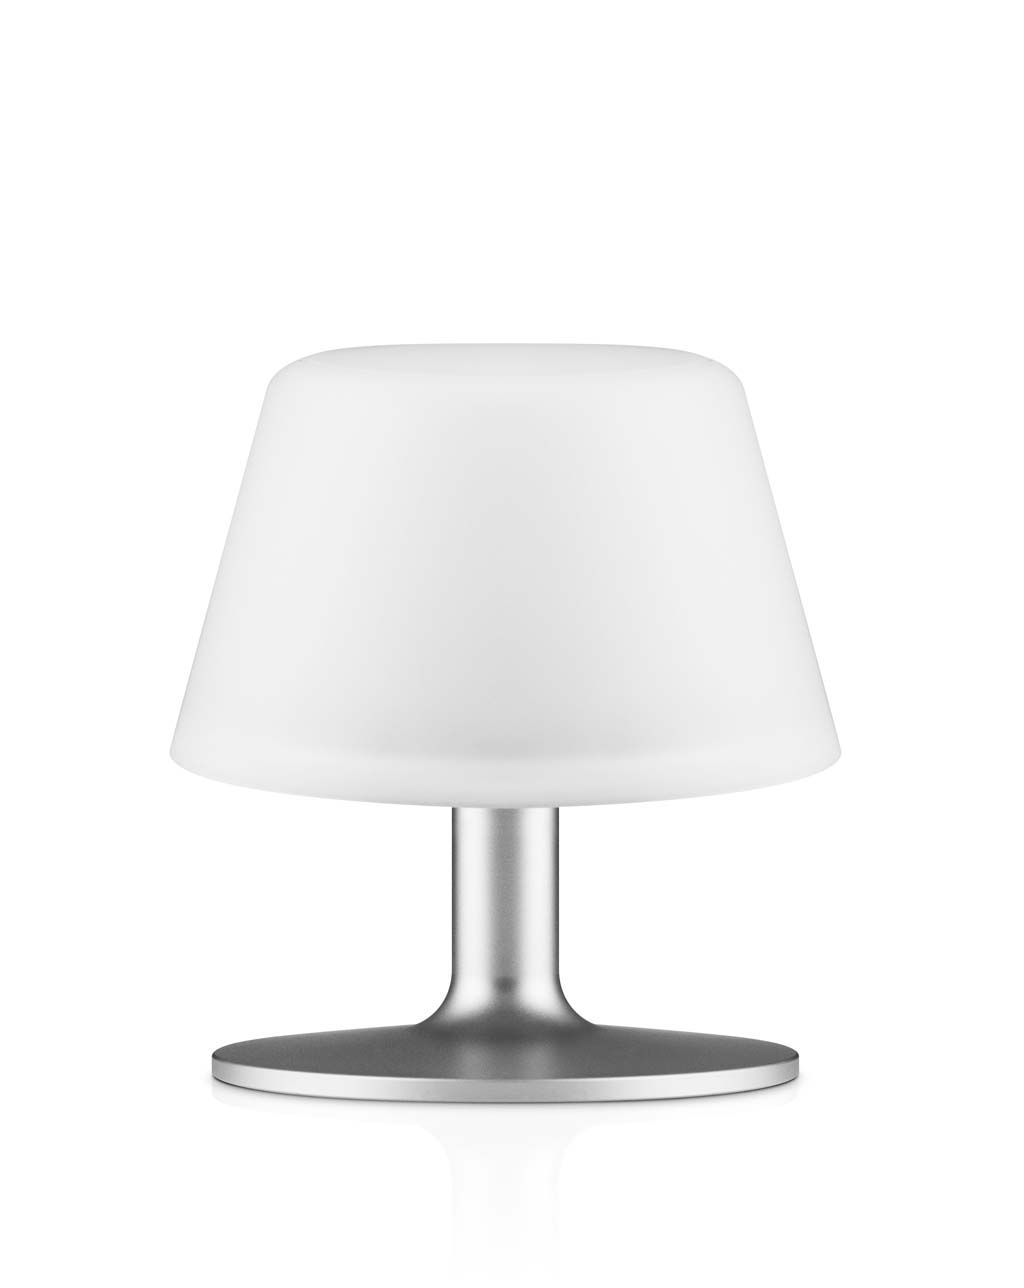 Design led lampen ichliebedesign wohnaccessoires pinterest design led lampen ichliebedesign parisarafo Image collections